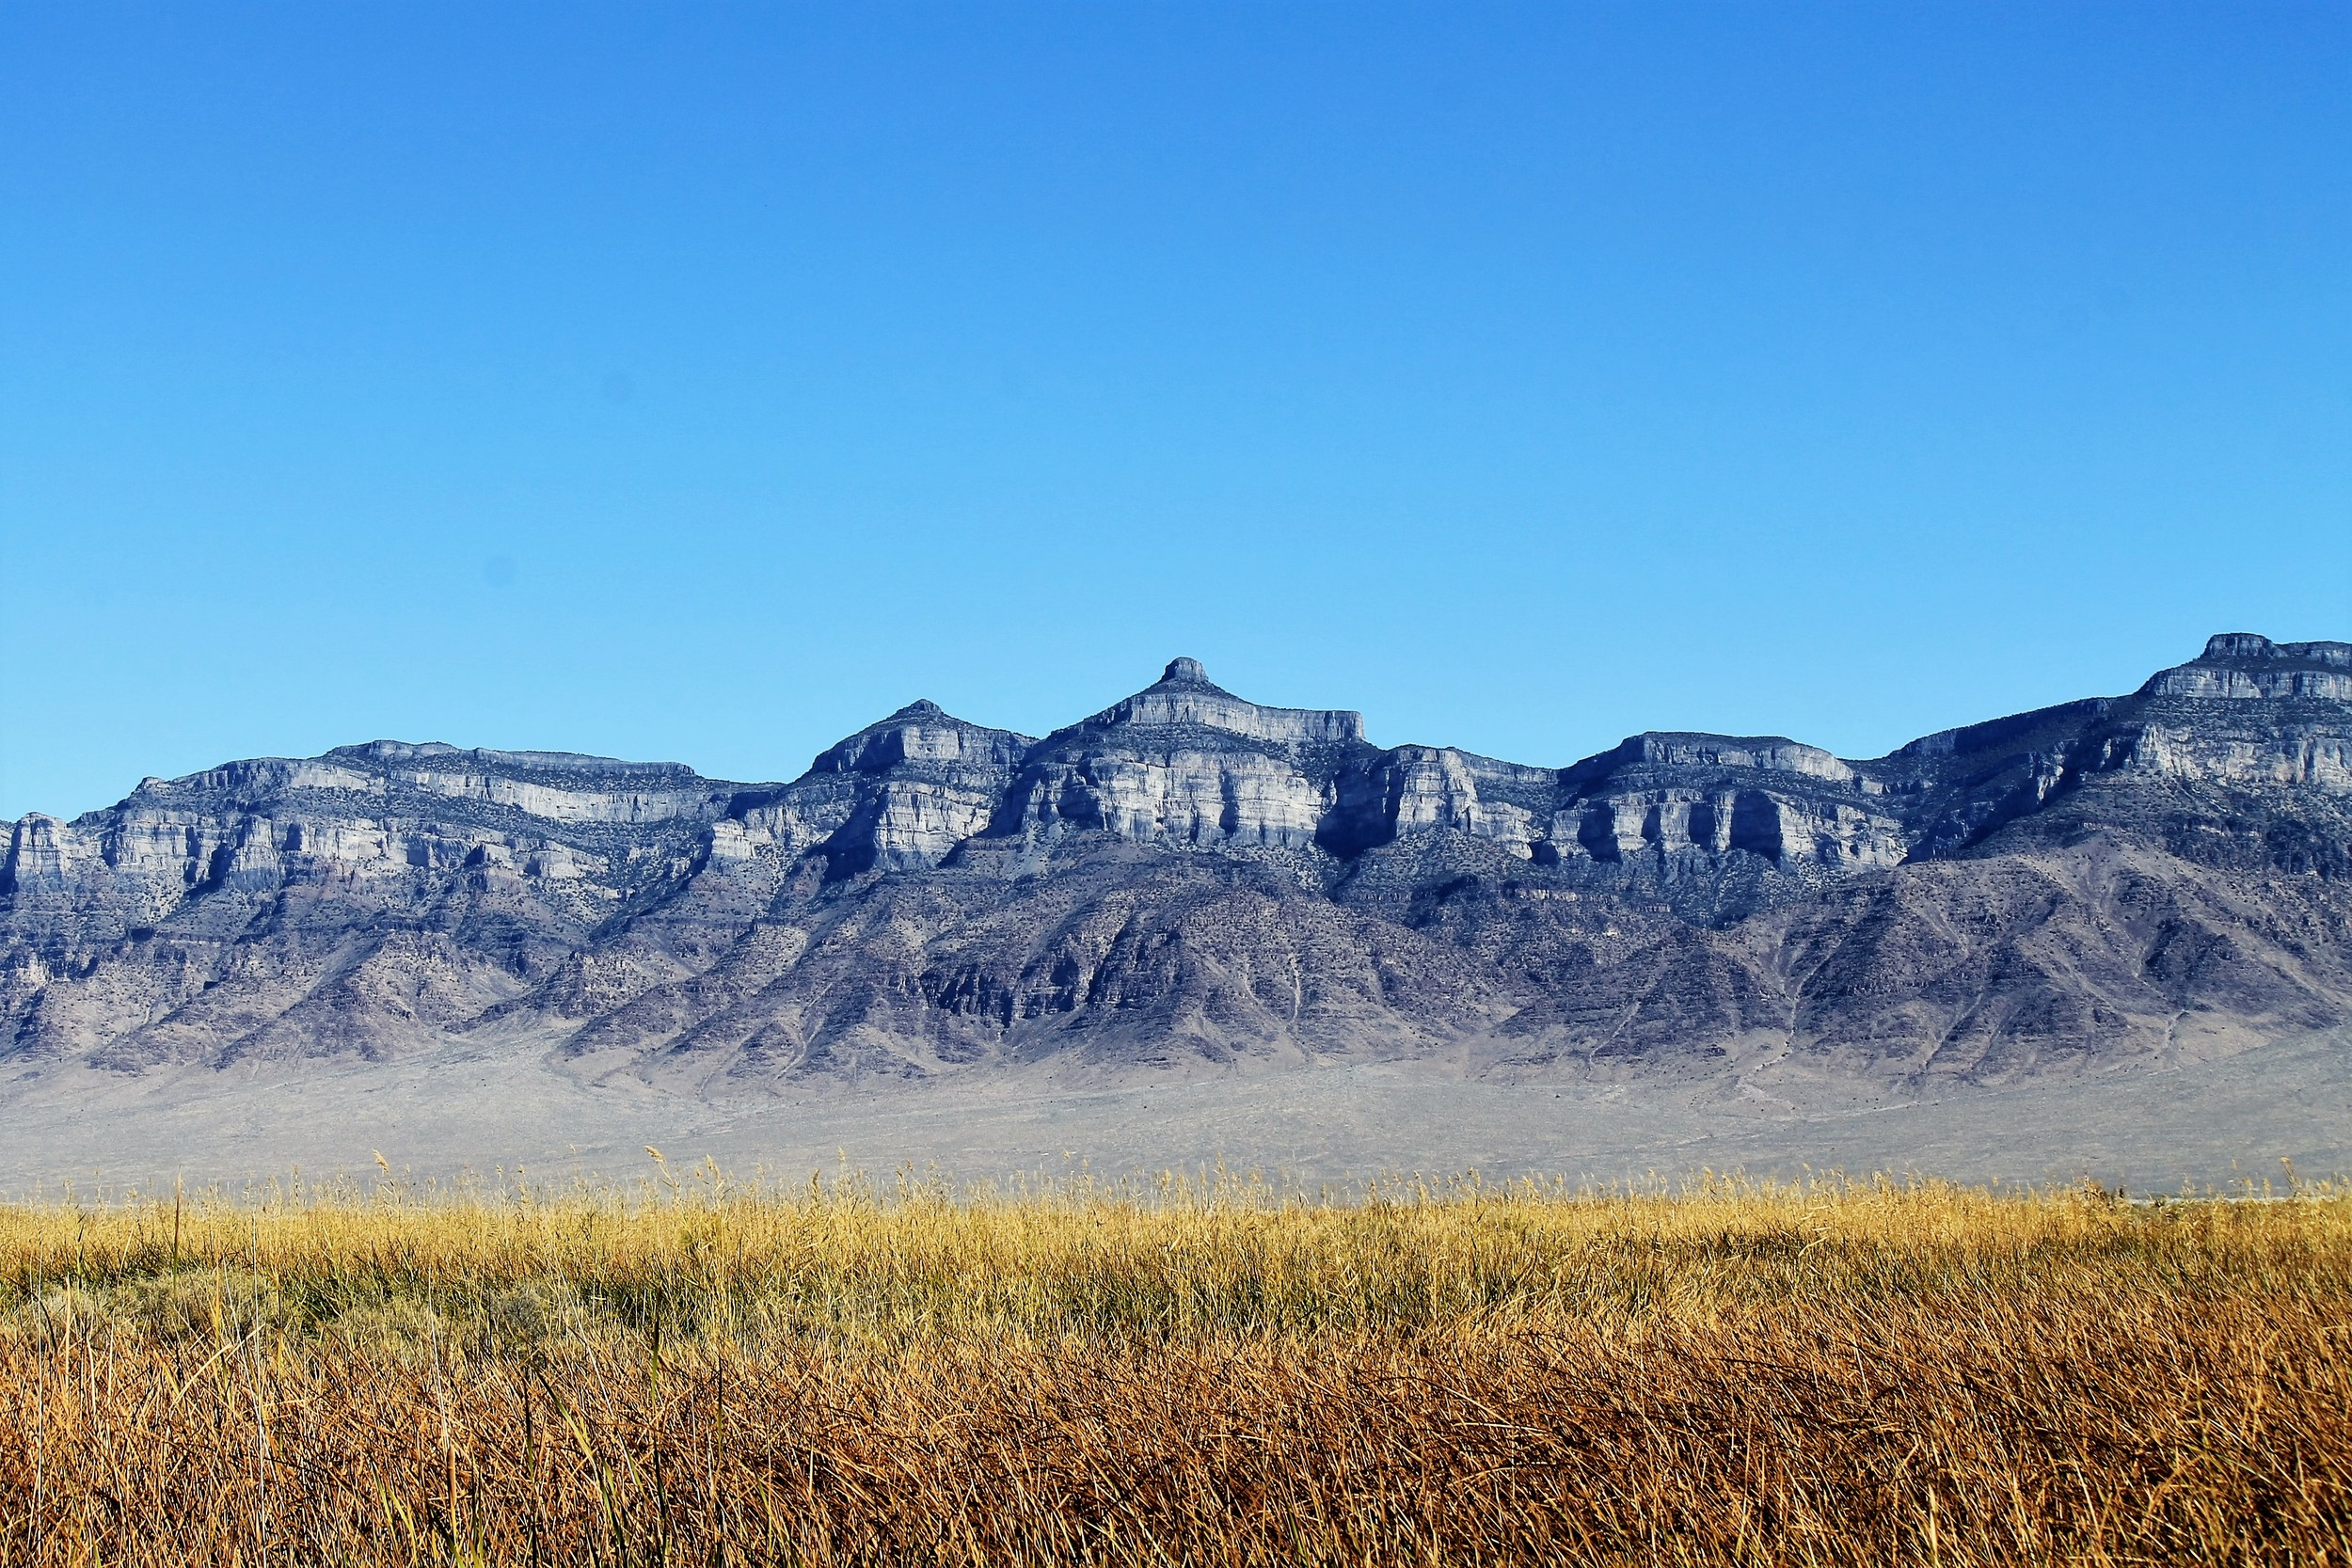 View of Tatow Knob (Swasey Mountain) above Coyote Springs